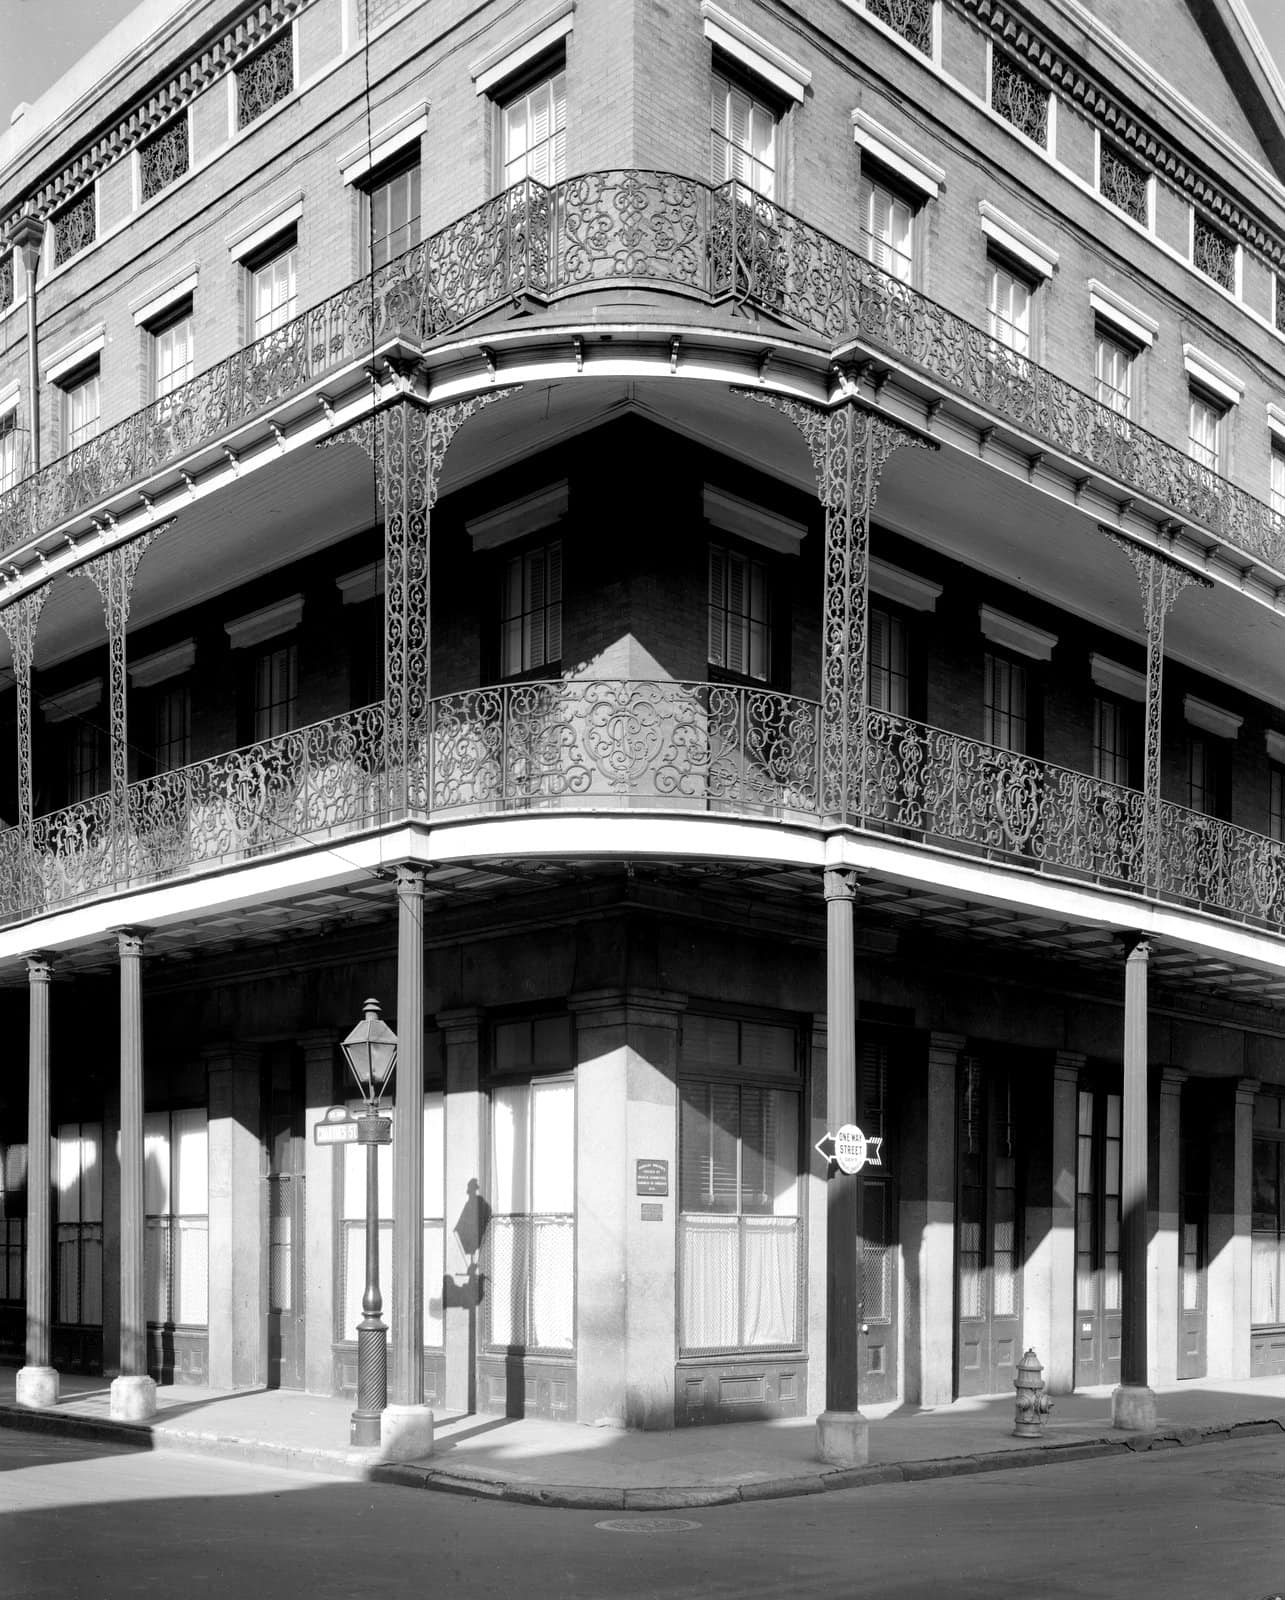 Old double balconies at Pontalba Buildings, Chartres St. opp. Jackson Sq., New Orleans (1930s)